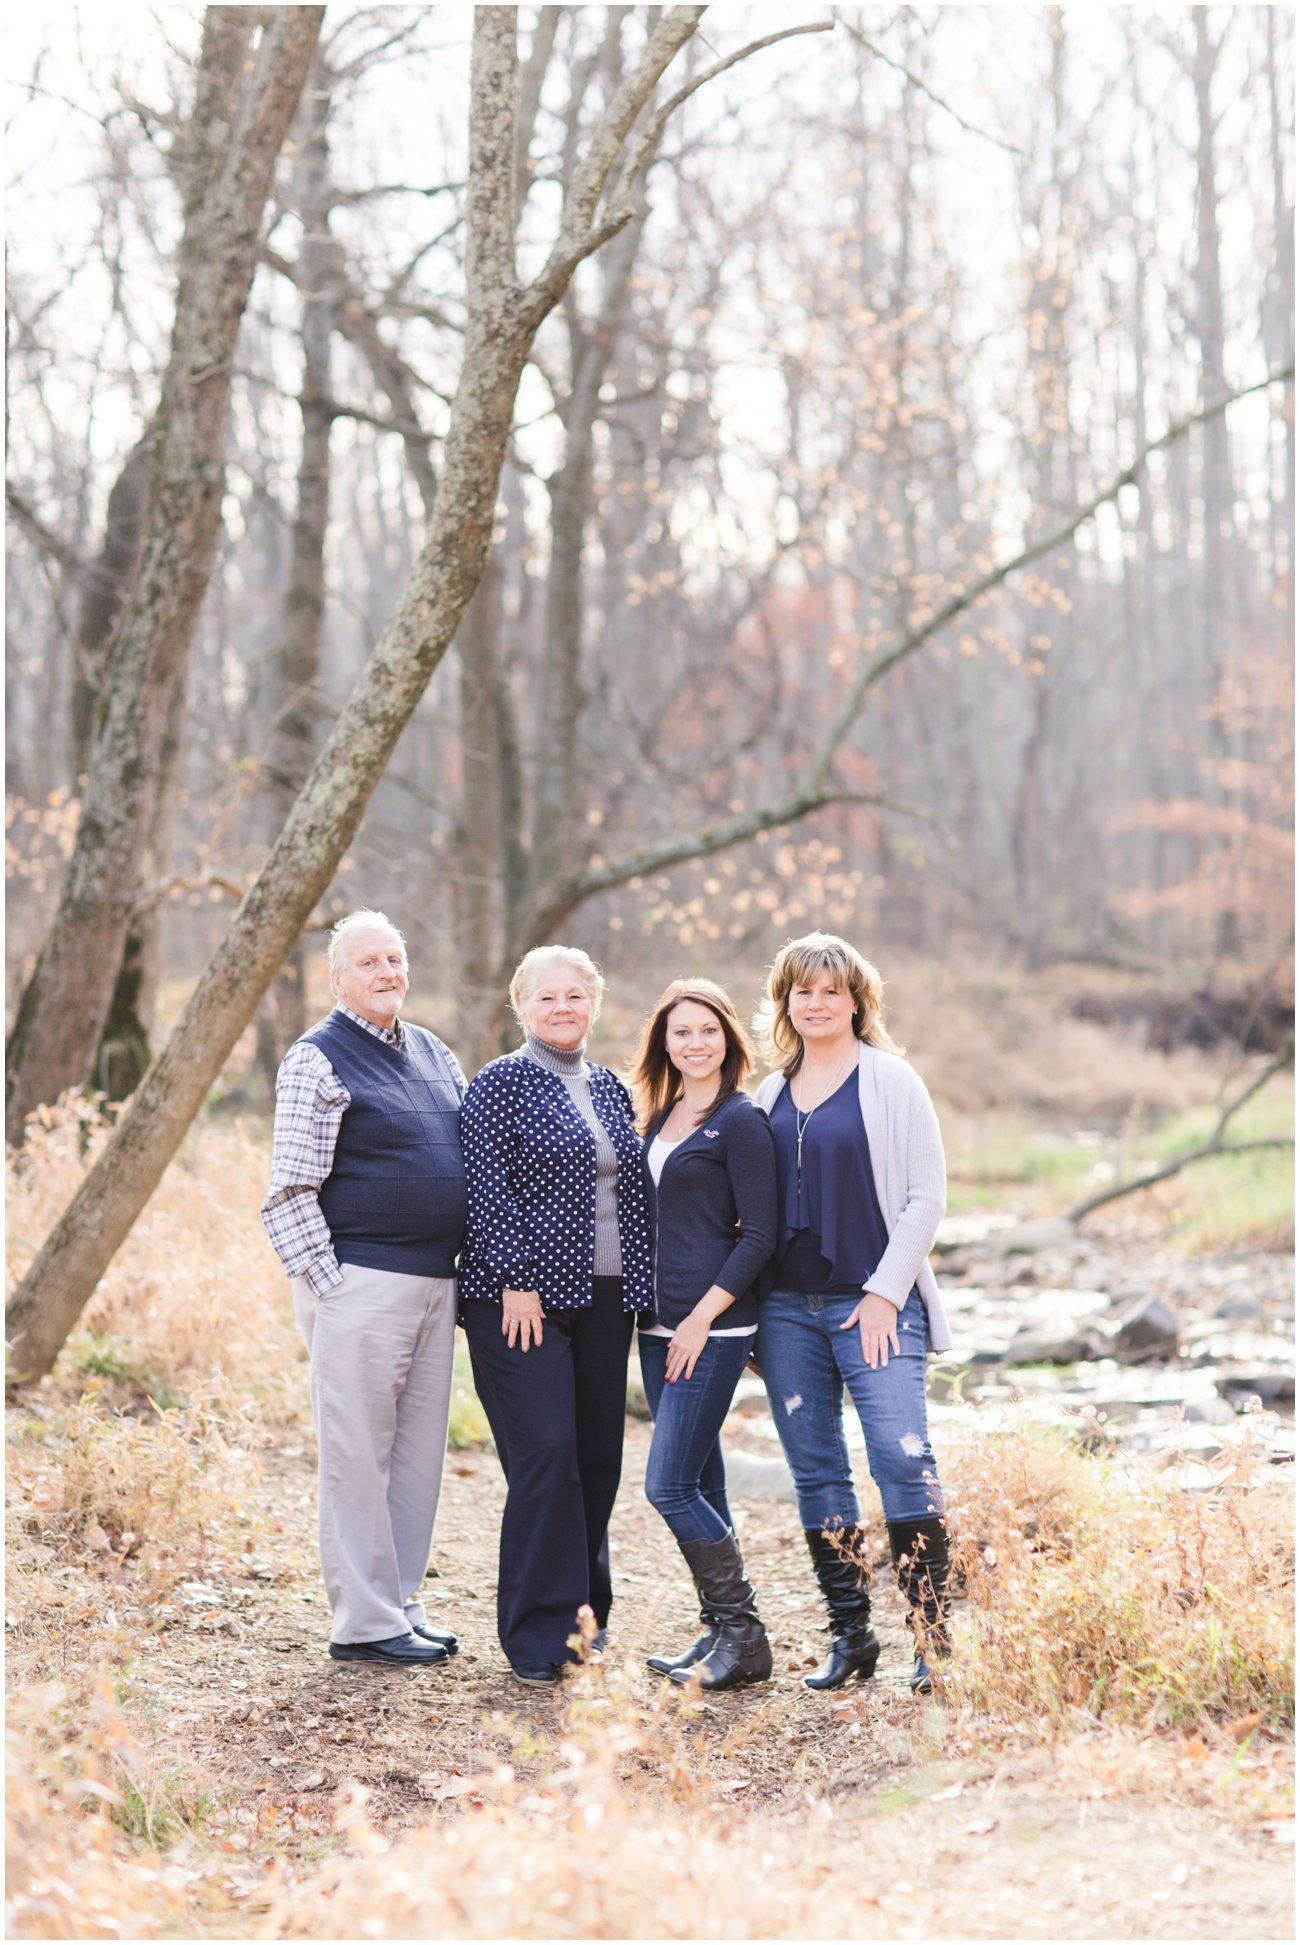 bittman_fall_family_photos_maryland_family_photographer_0010